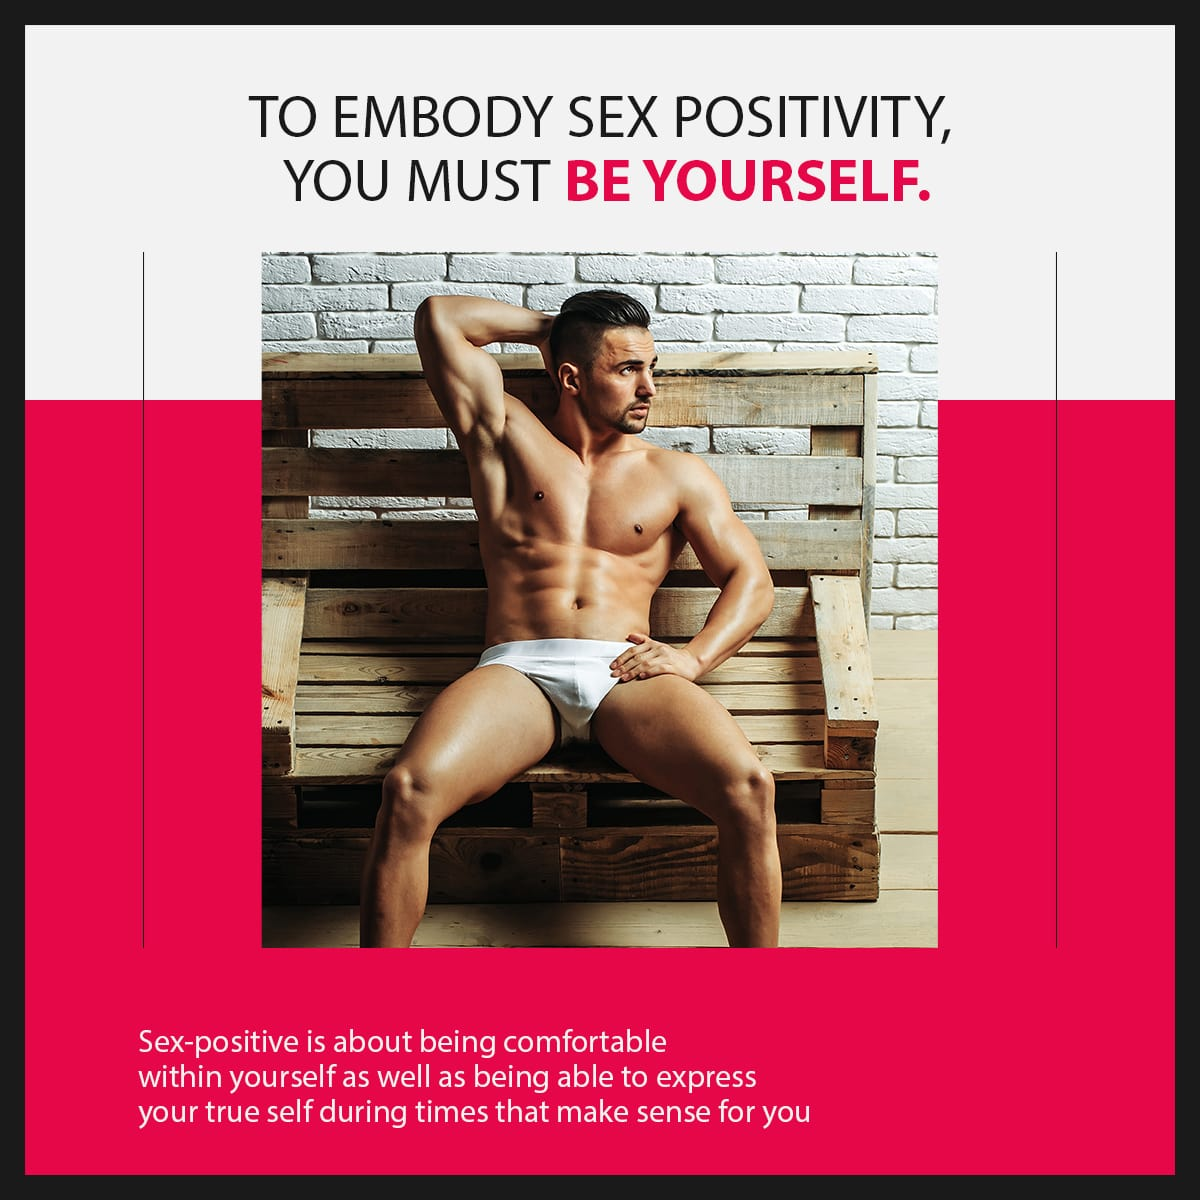 embody sex positivity